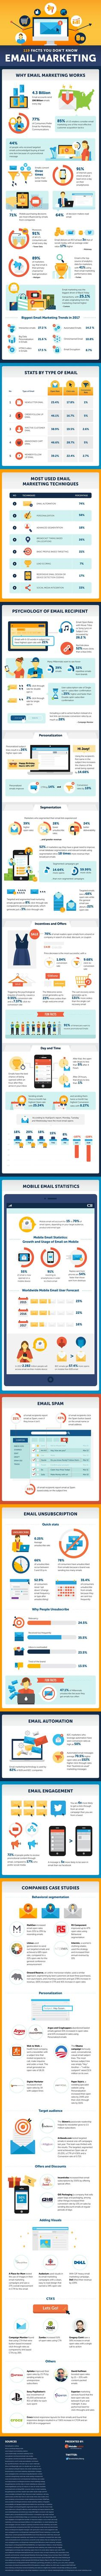 119 Facts You Don't Know About Email Marketing #Infographic #EmailMarketing